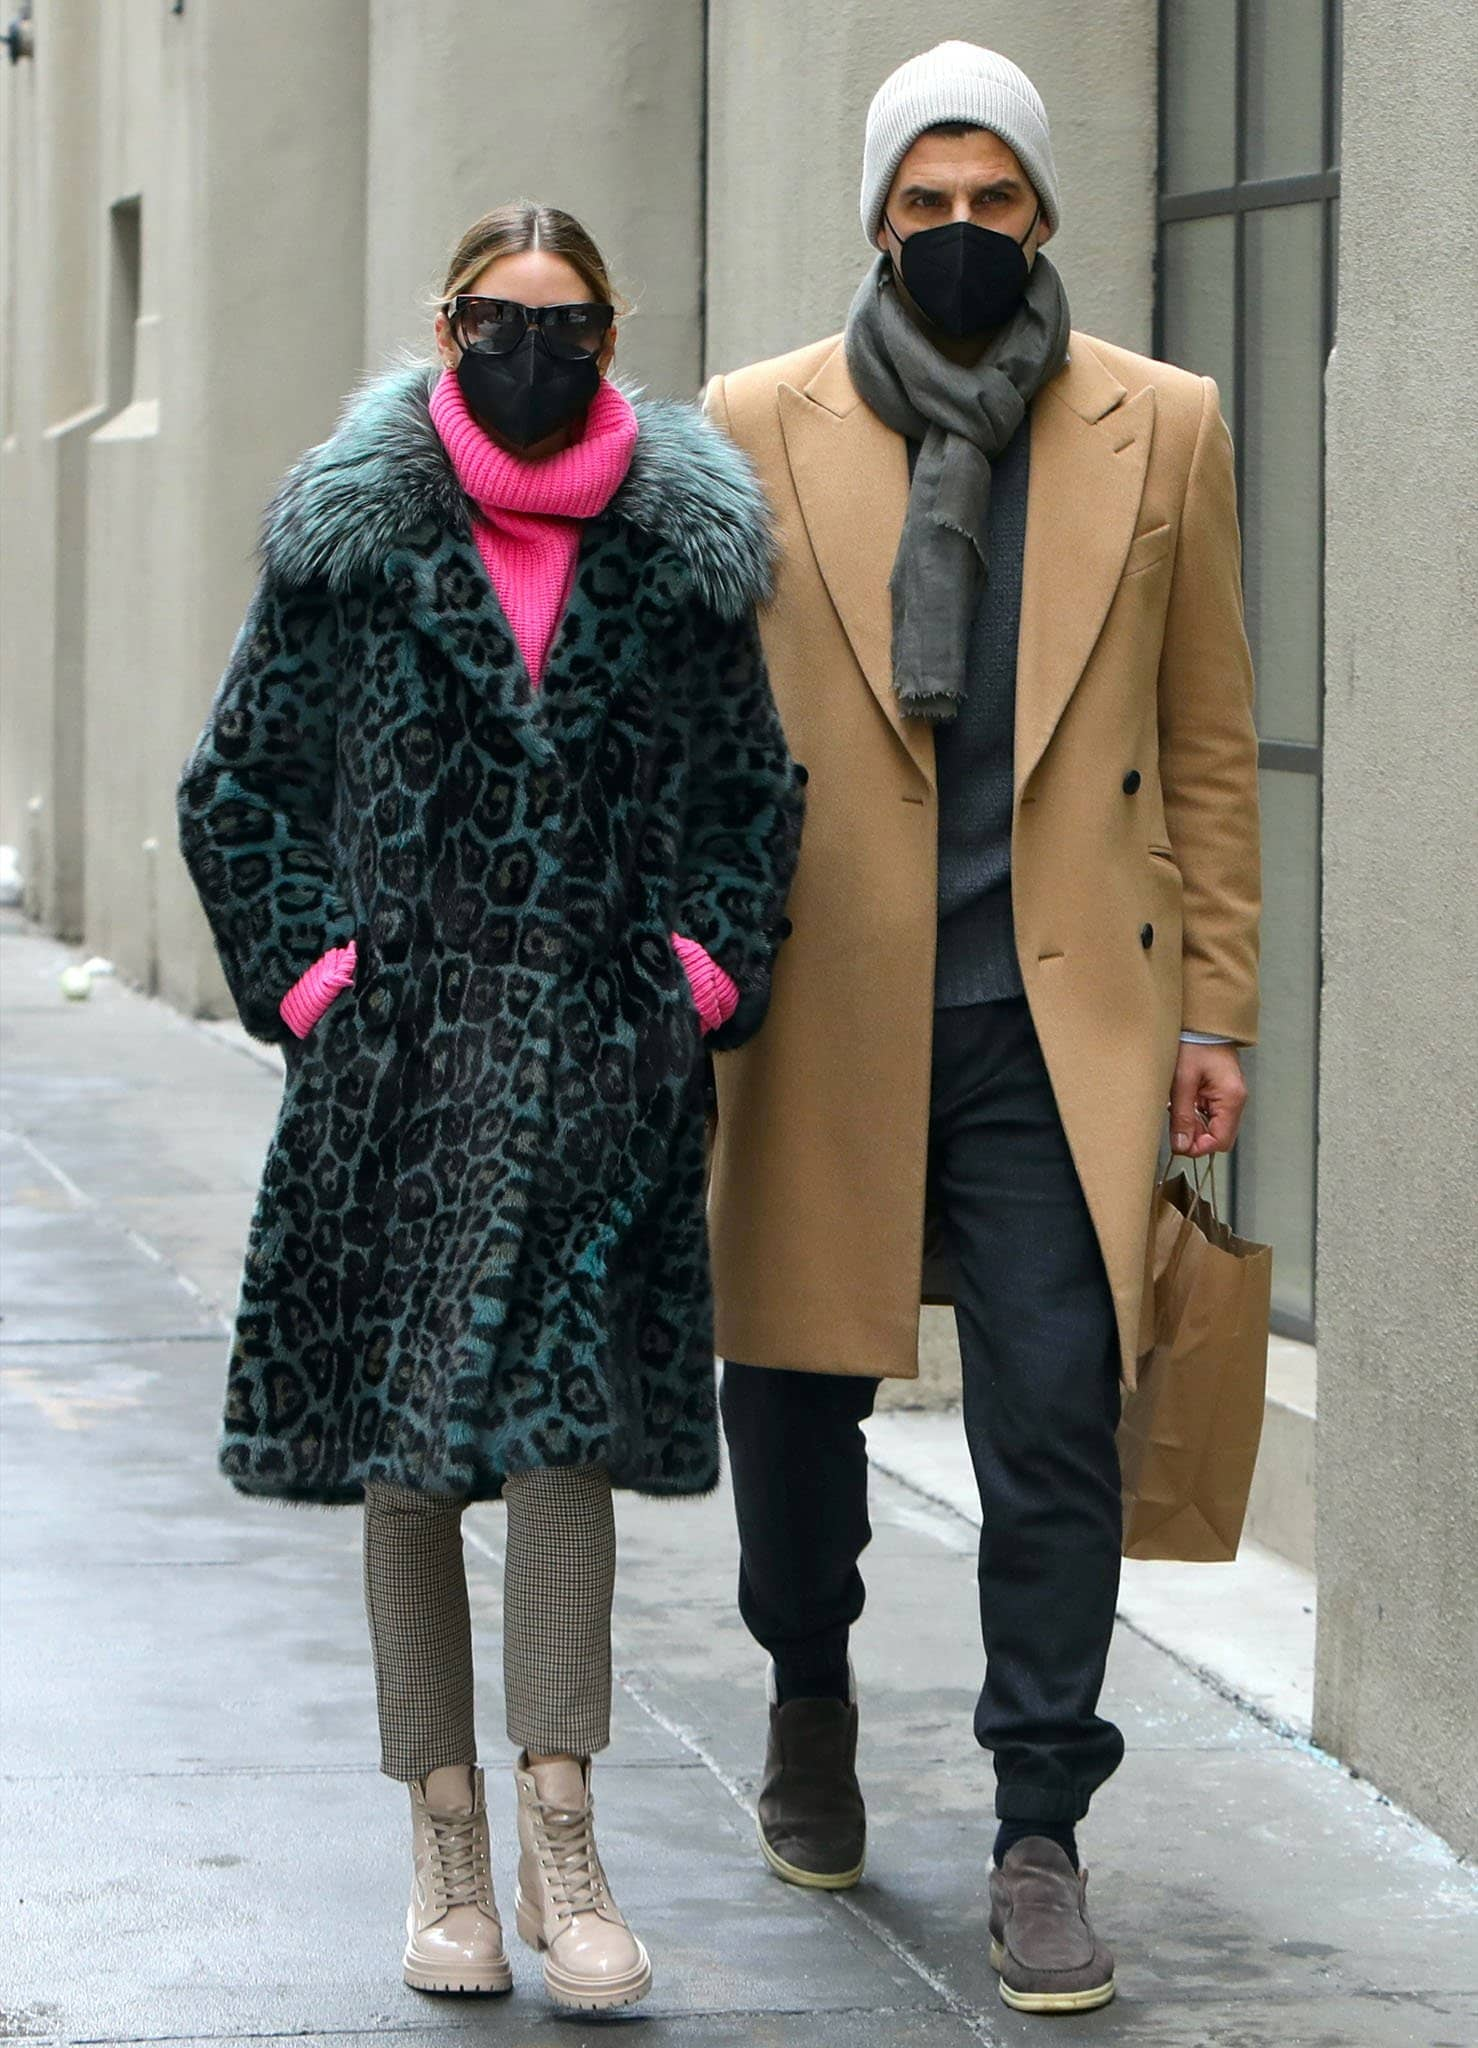 Olivia Palermo and husband Johannes Huebl stroll around Downtown Brooklyn on February 15, 2021